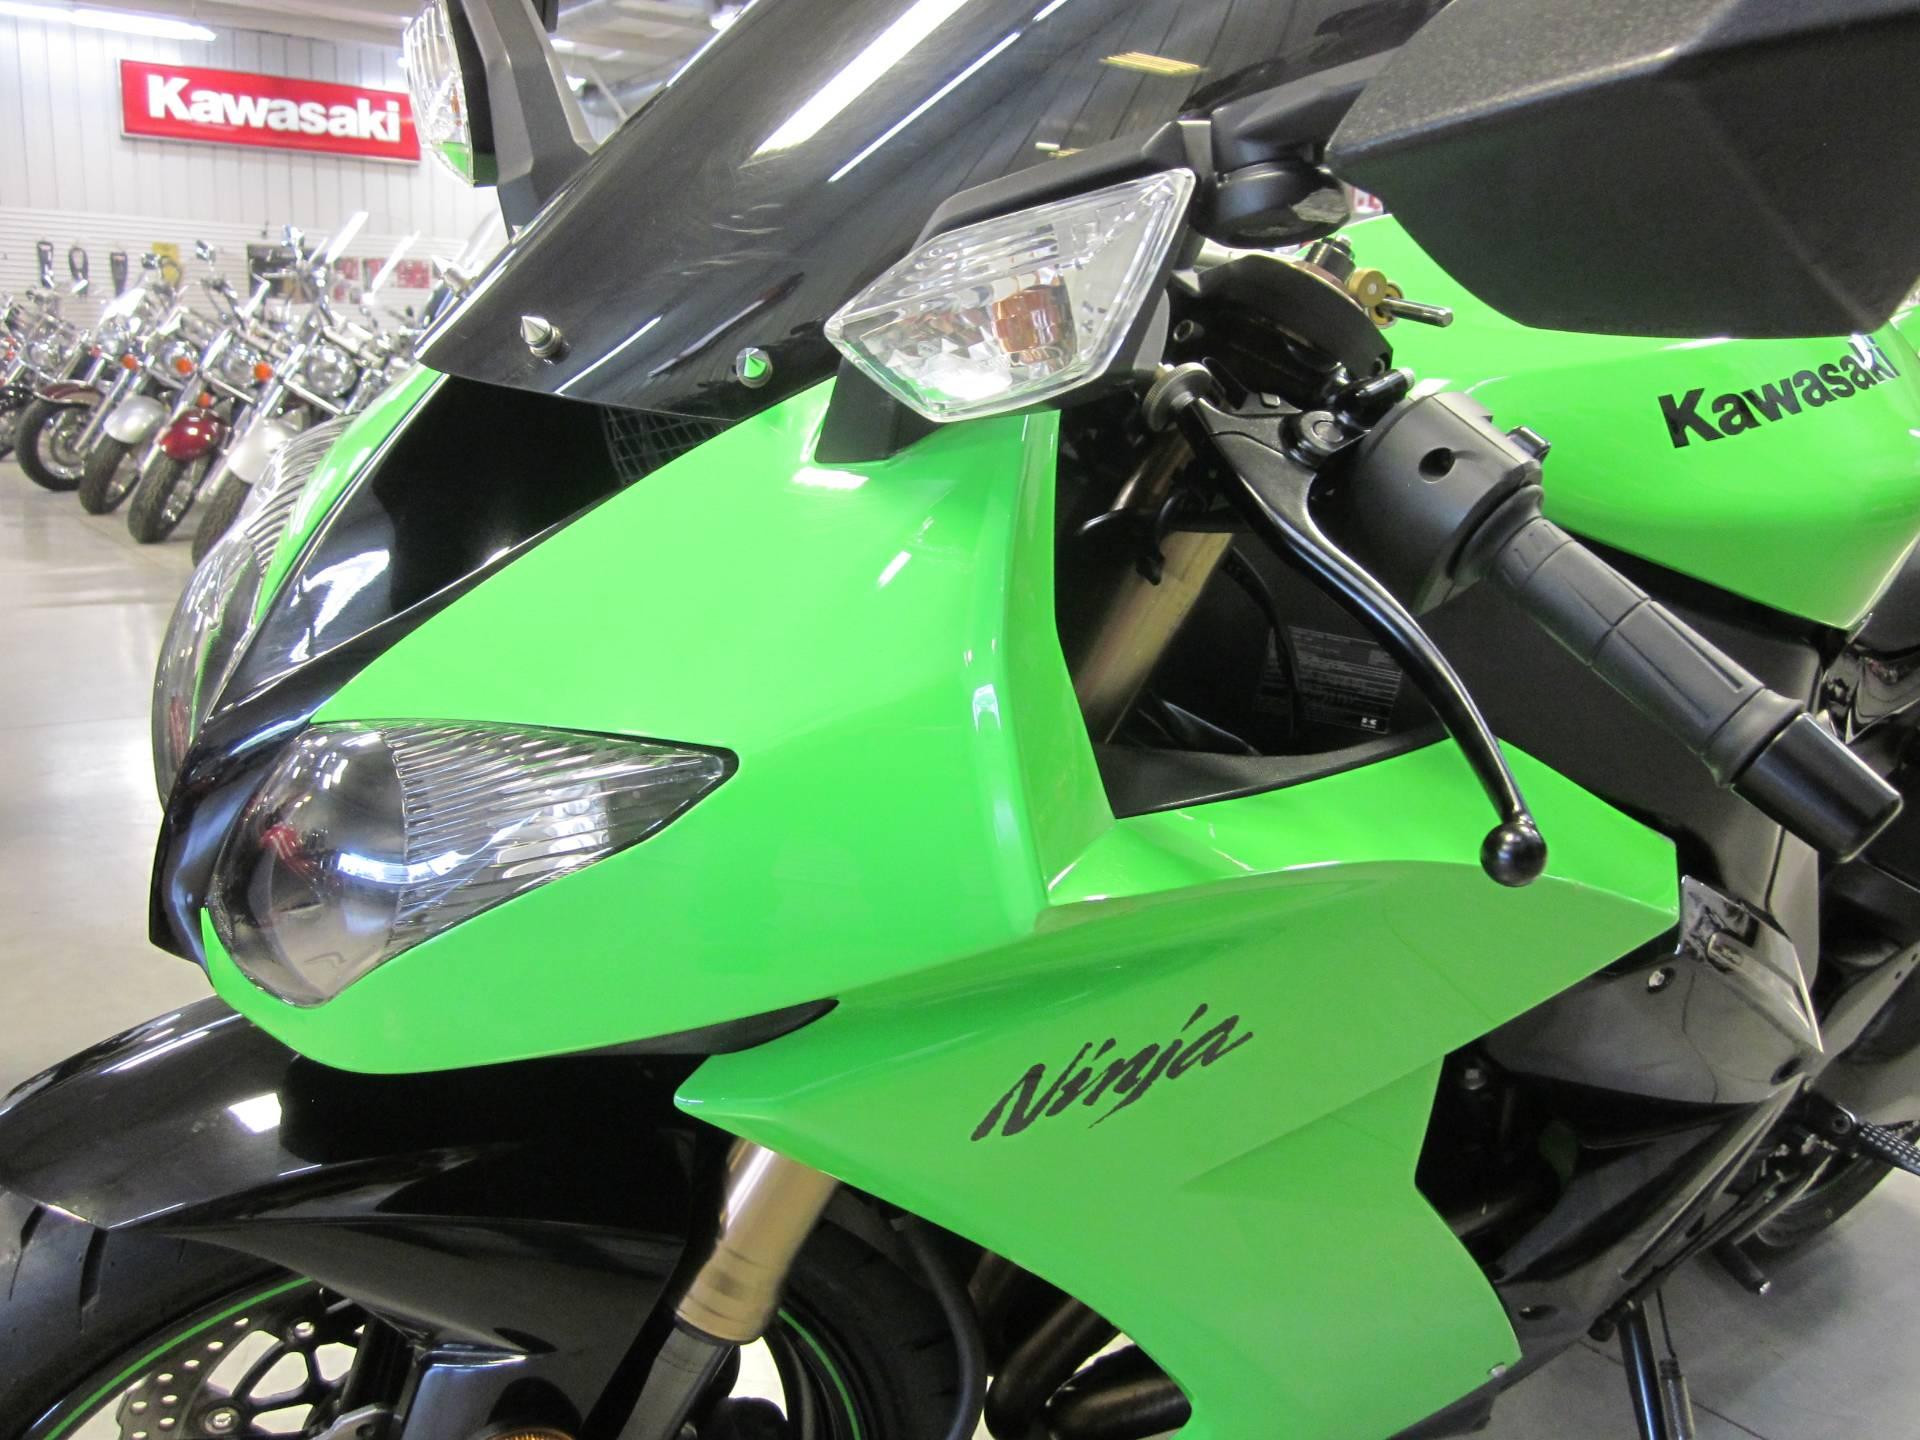 2008 Kawasaki Ninja in Lima, Ohio